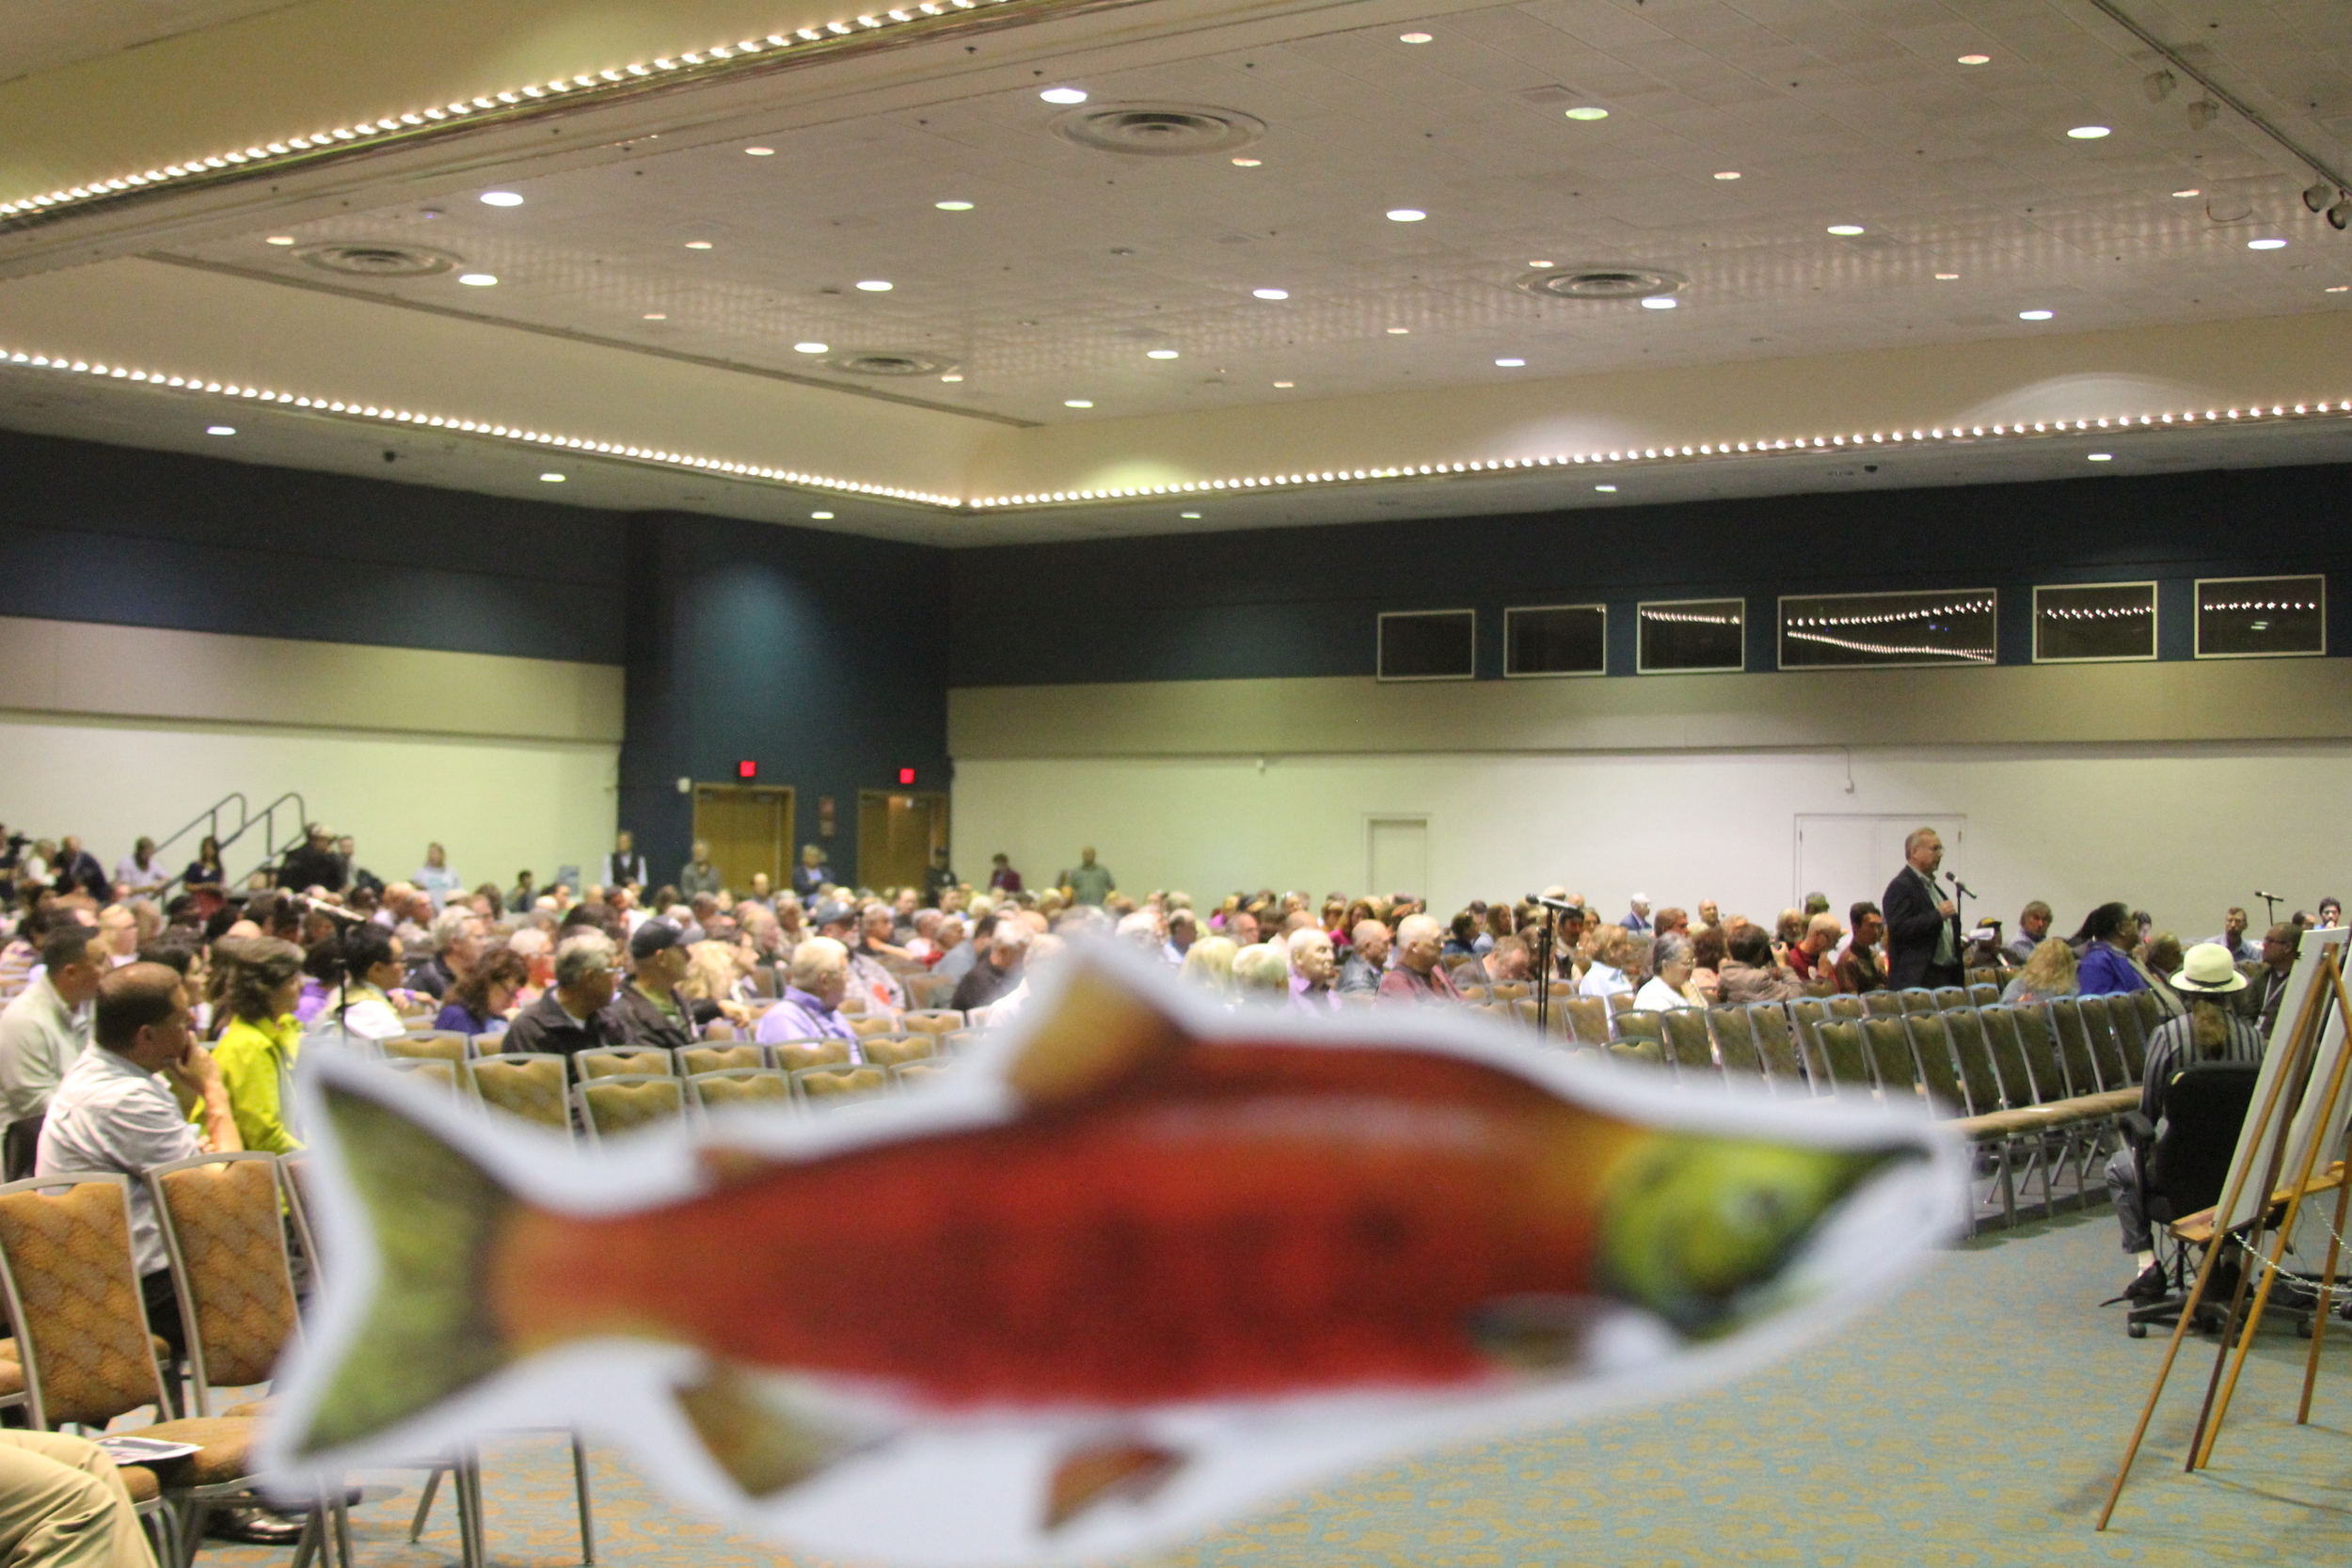 Save Bristol Bay supporters waved salmon signs during testimony to the EPA